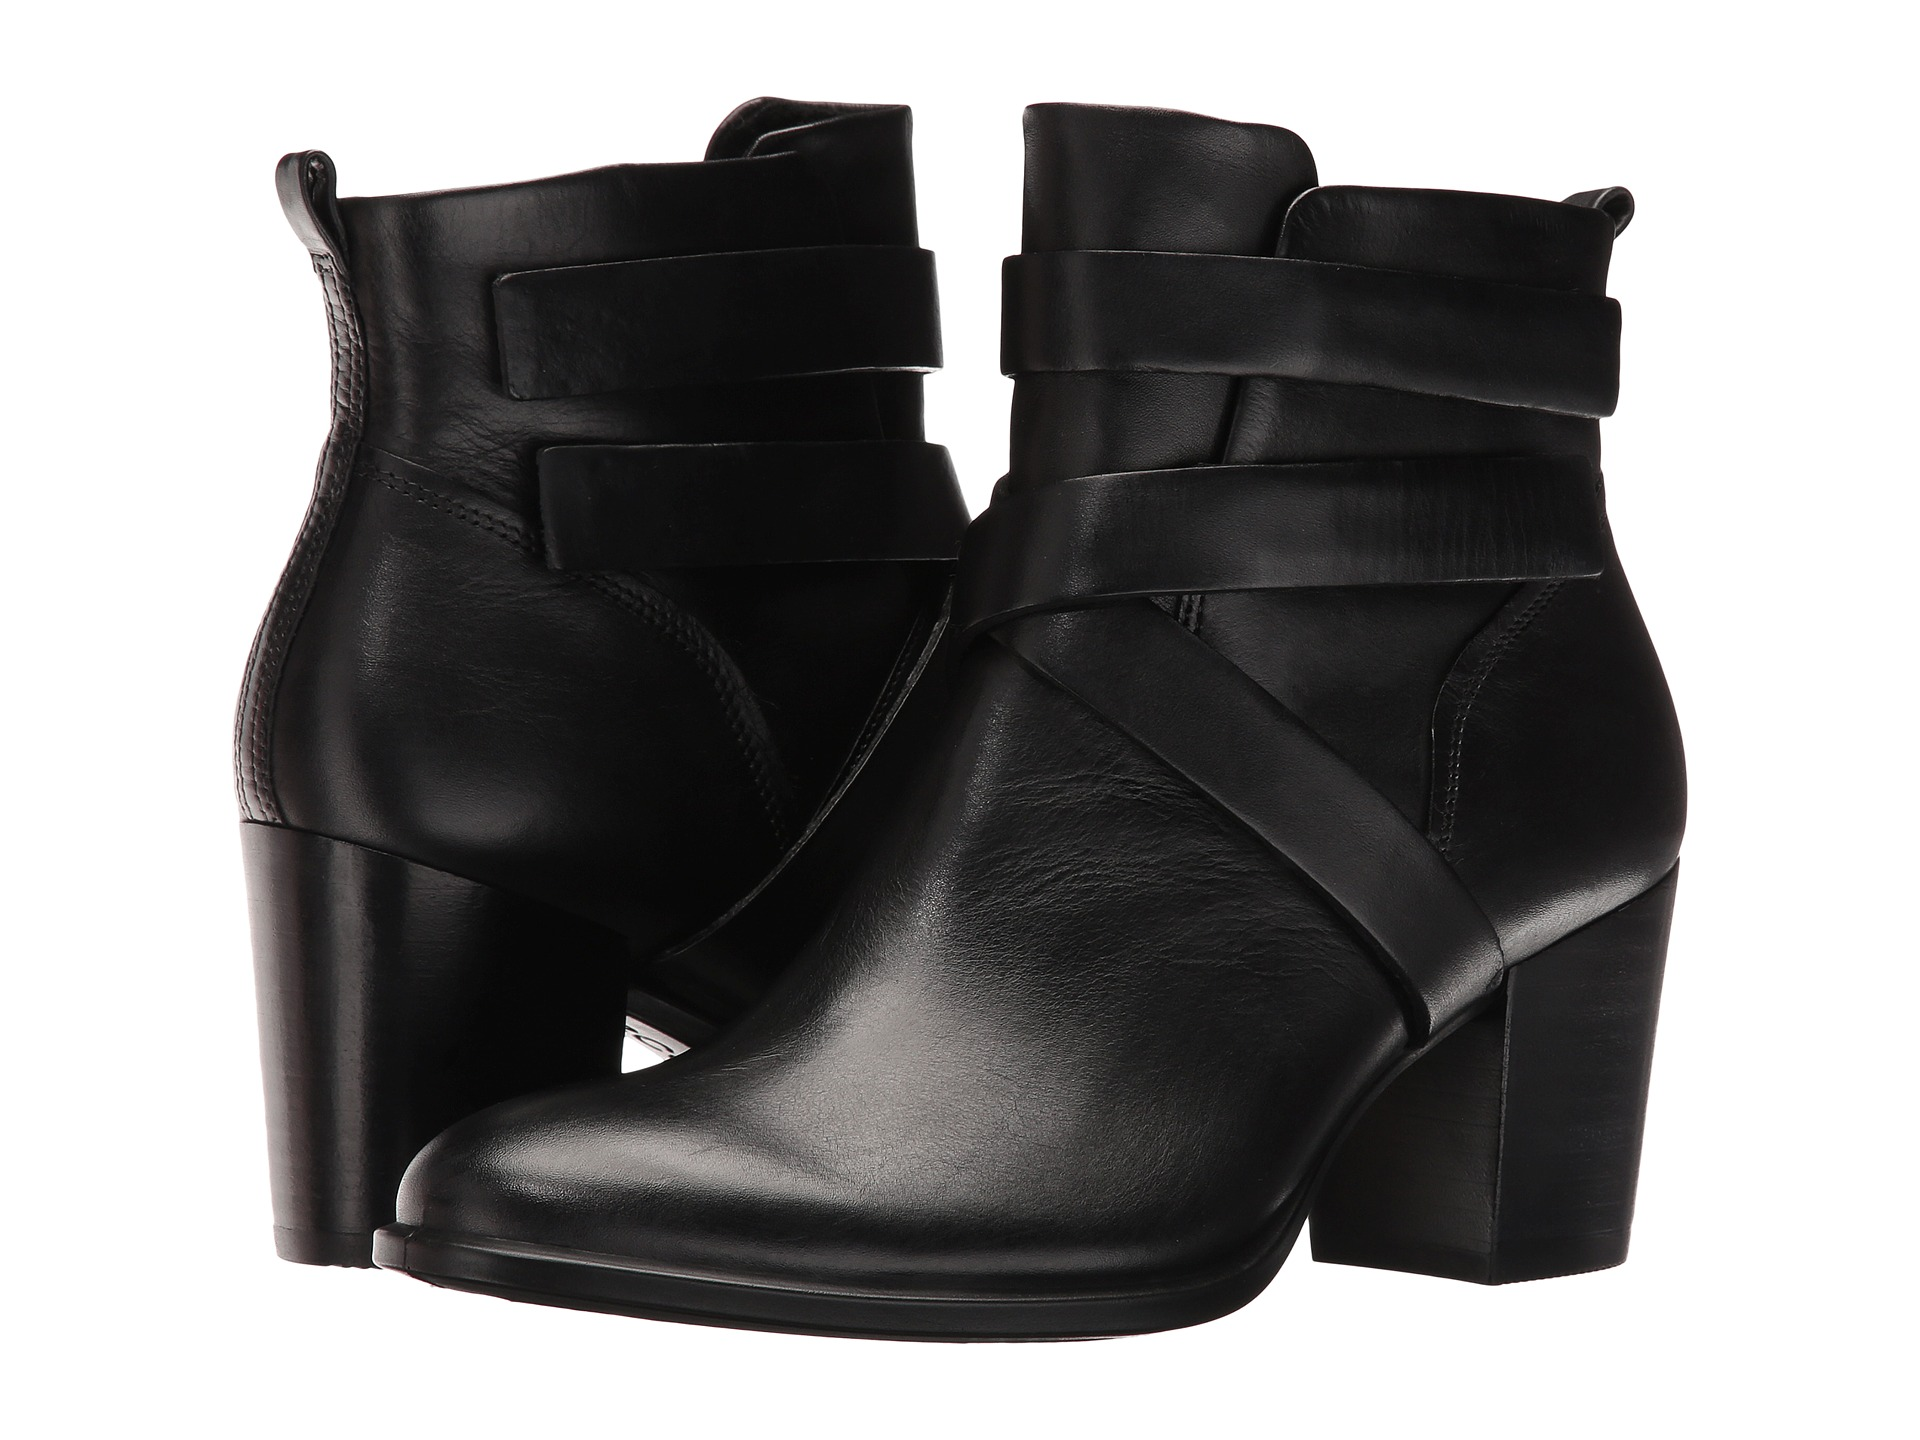 ECCO Shape 55 Ankle Boot at 6pm.com